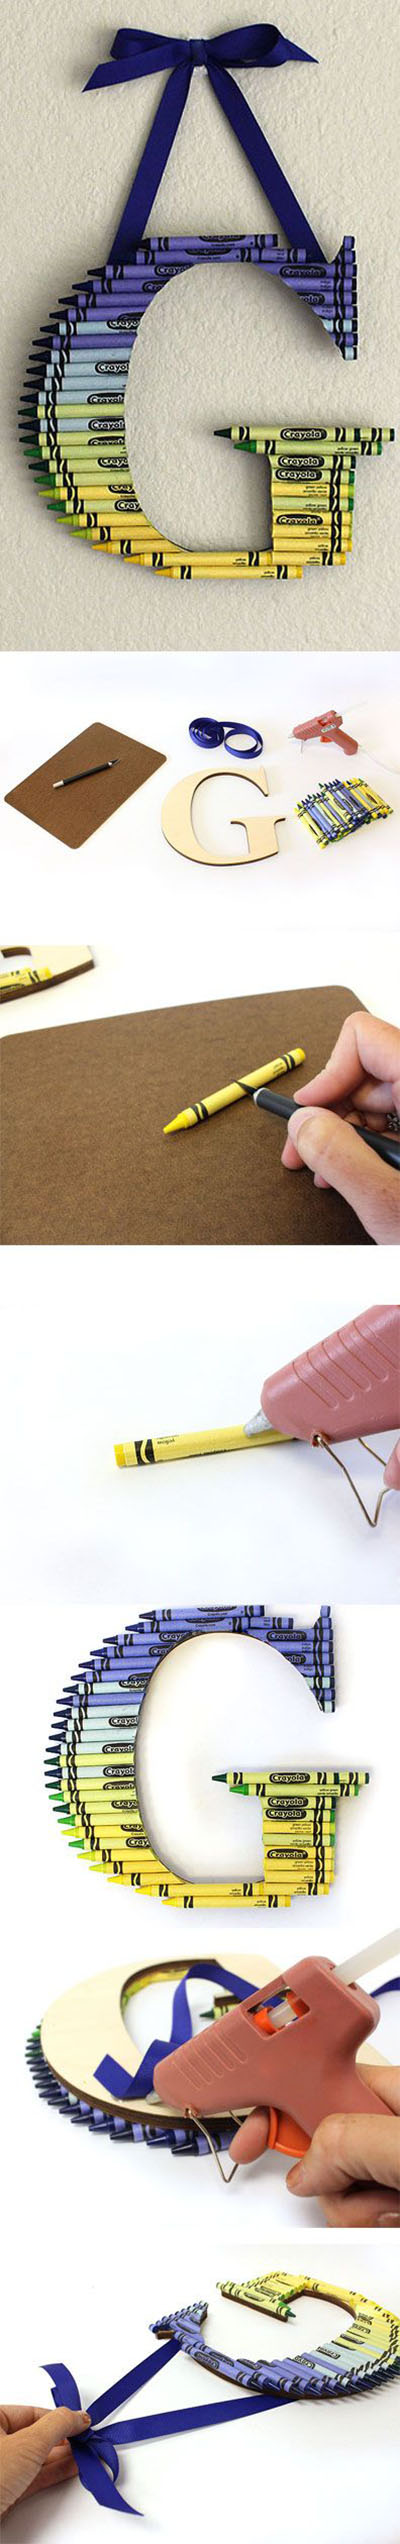 11 How to Create a Ombre Crayon Letter e06c535d7